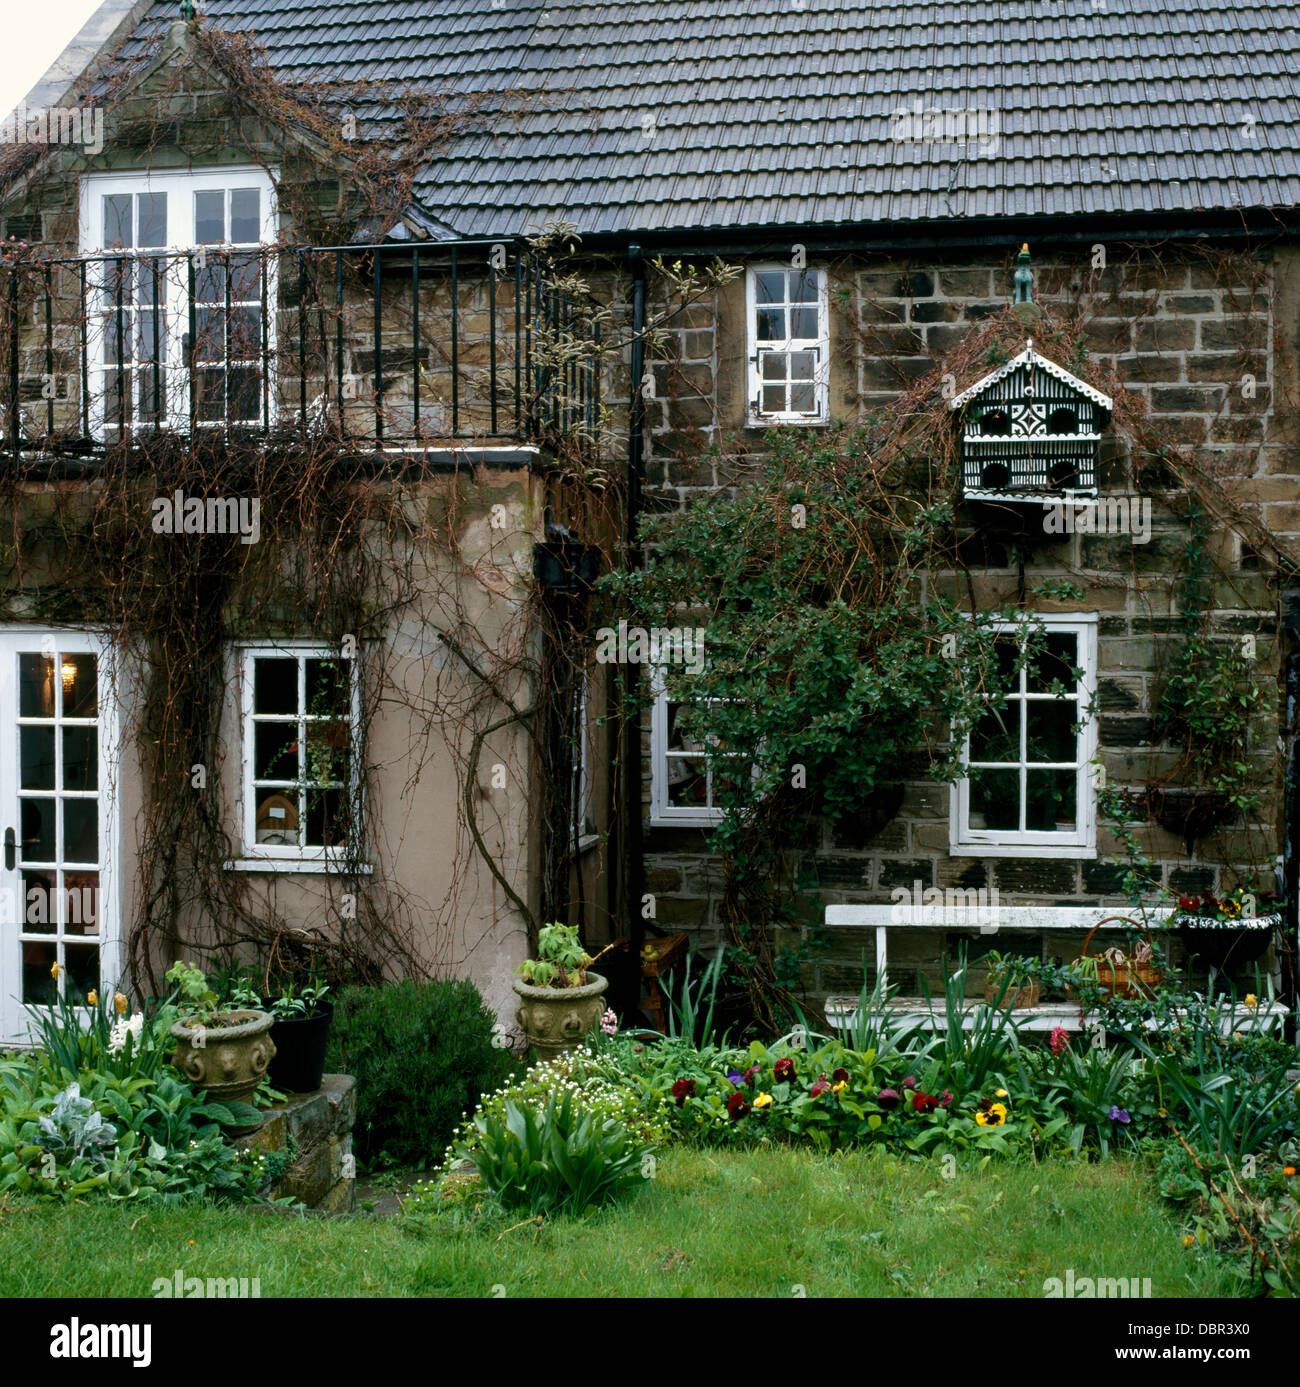 old dovecote on wall of small stone country house with balcony old dovecote on wall of small stone country house with balcony above french windows